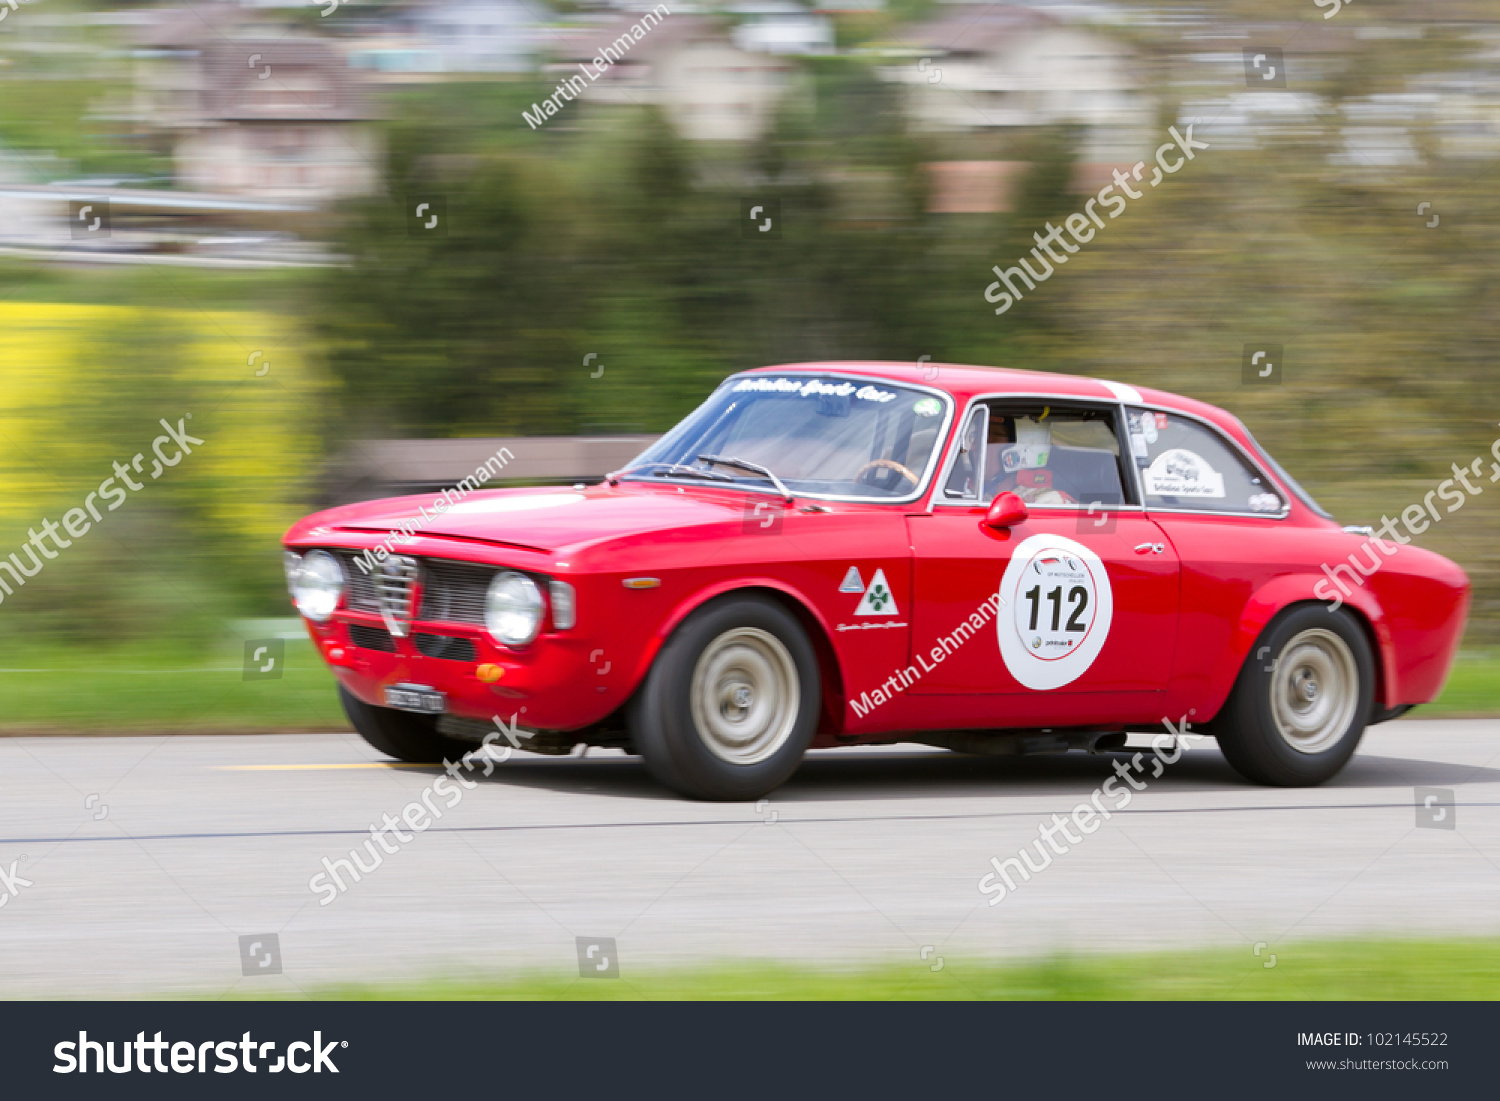 mutschellen switzerland april 29 vintage race touring car alfa romeo giulia sprint gt from. Black Bedroom Furniture Sets. Home Design Ideas